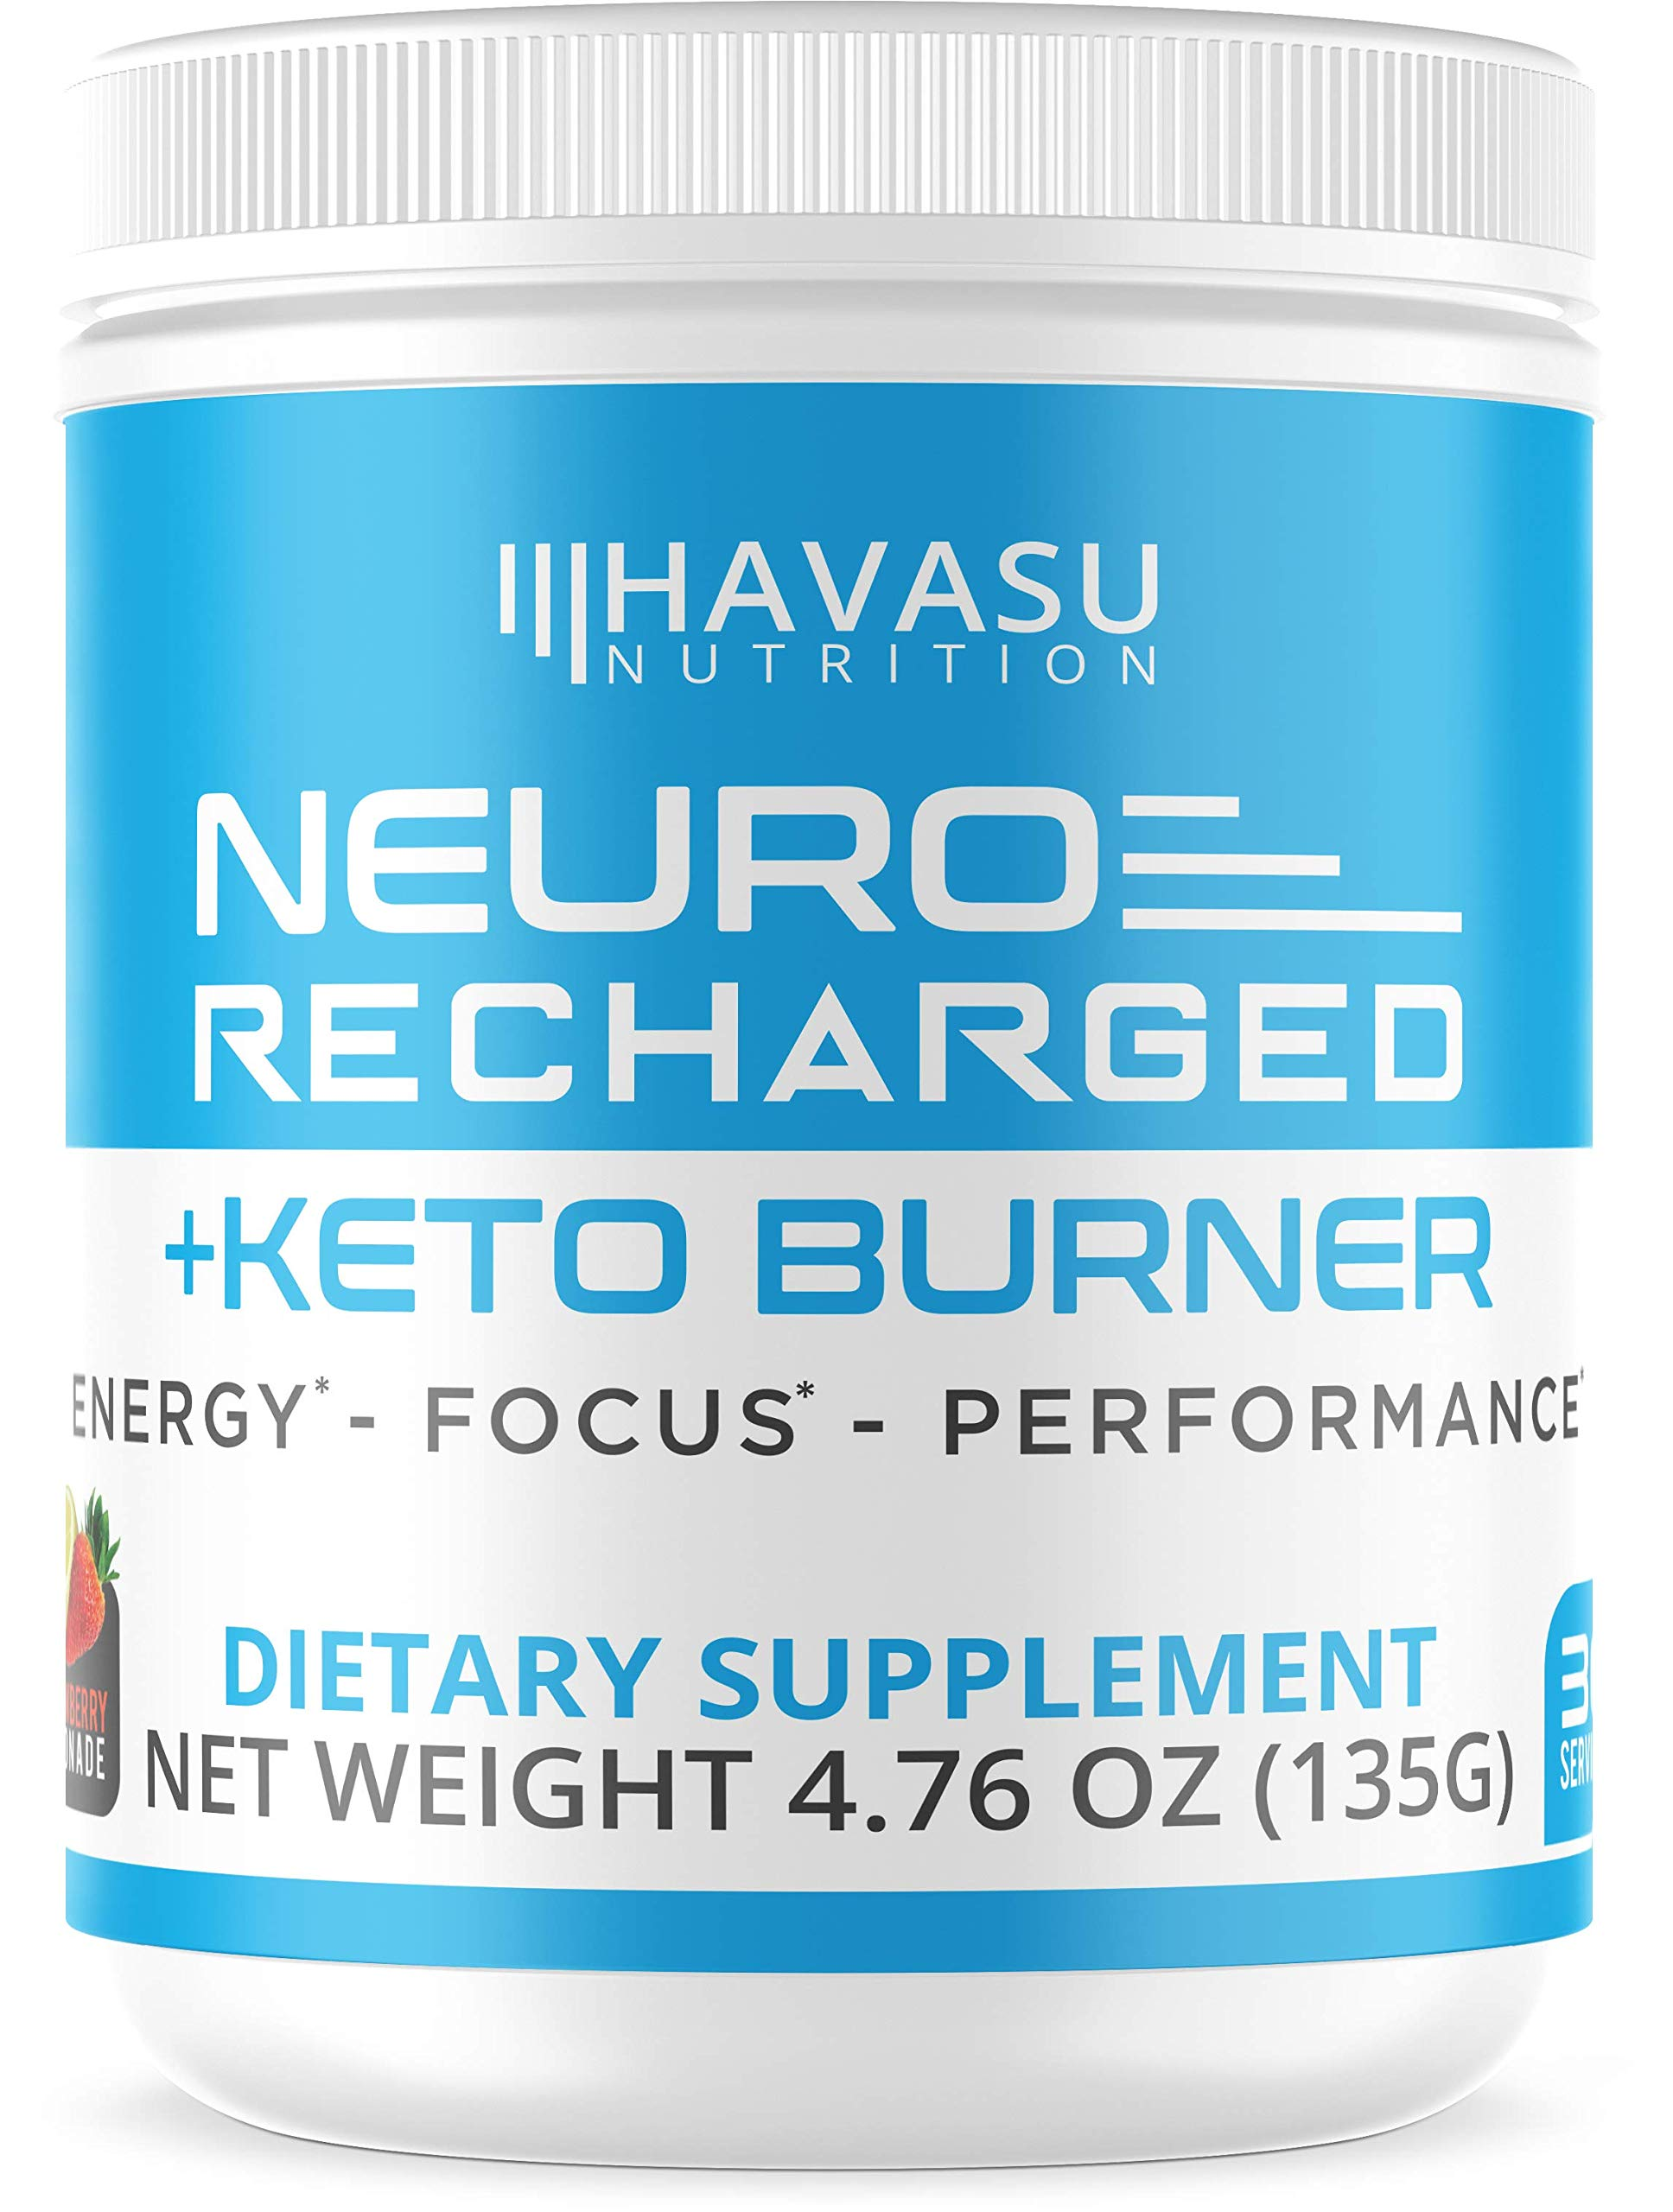 Havasu Nutrition Extra Strength Keto Brain Supplement for Energy & Focus - Mental Performance Nootropic & Pre Workout with Natural Caffeine, Ginkgo Biloba & More - No Crash Brain Booster 4.76 OZ (135G) by Havasu Nutrition